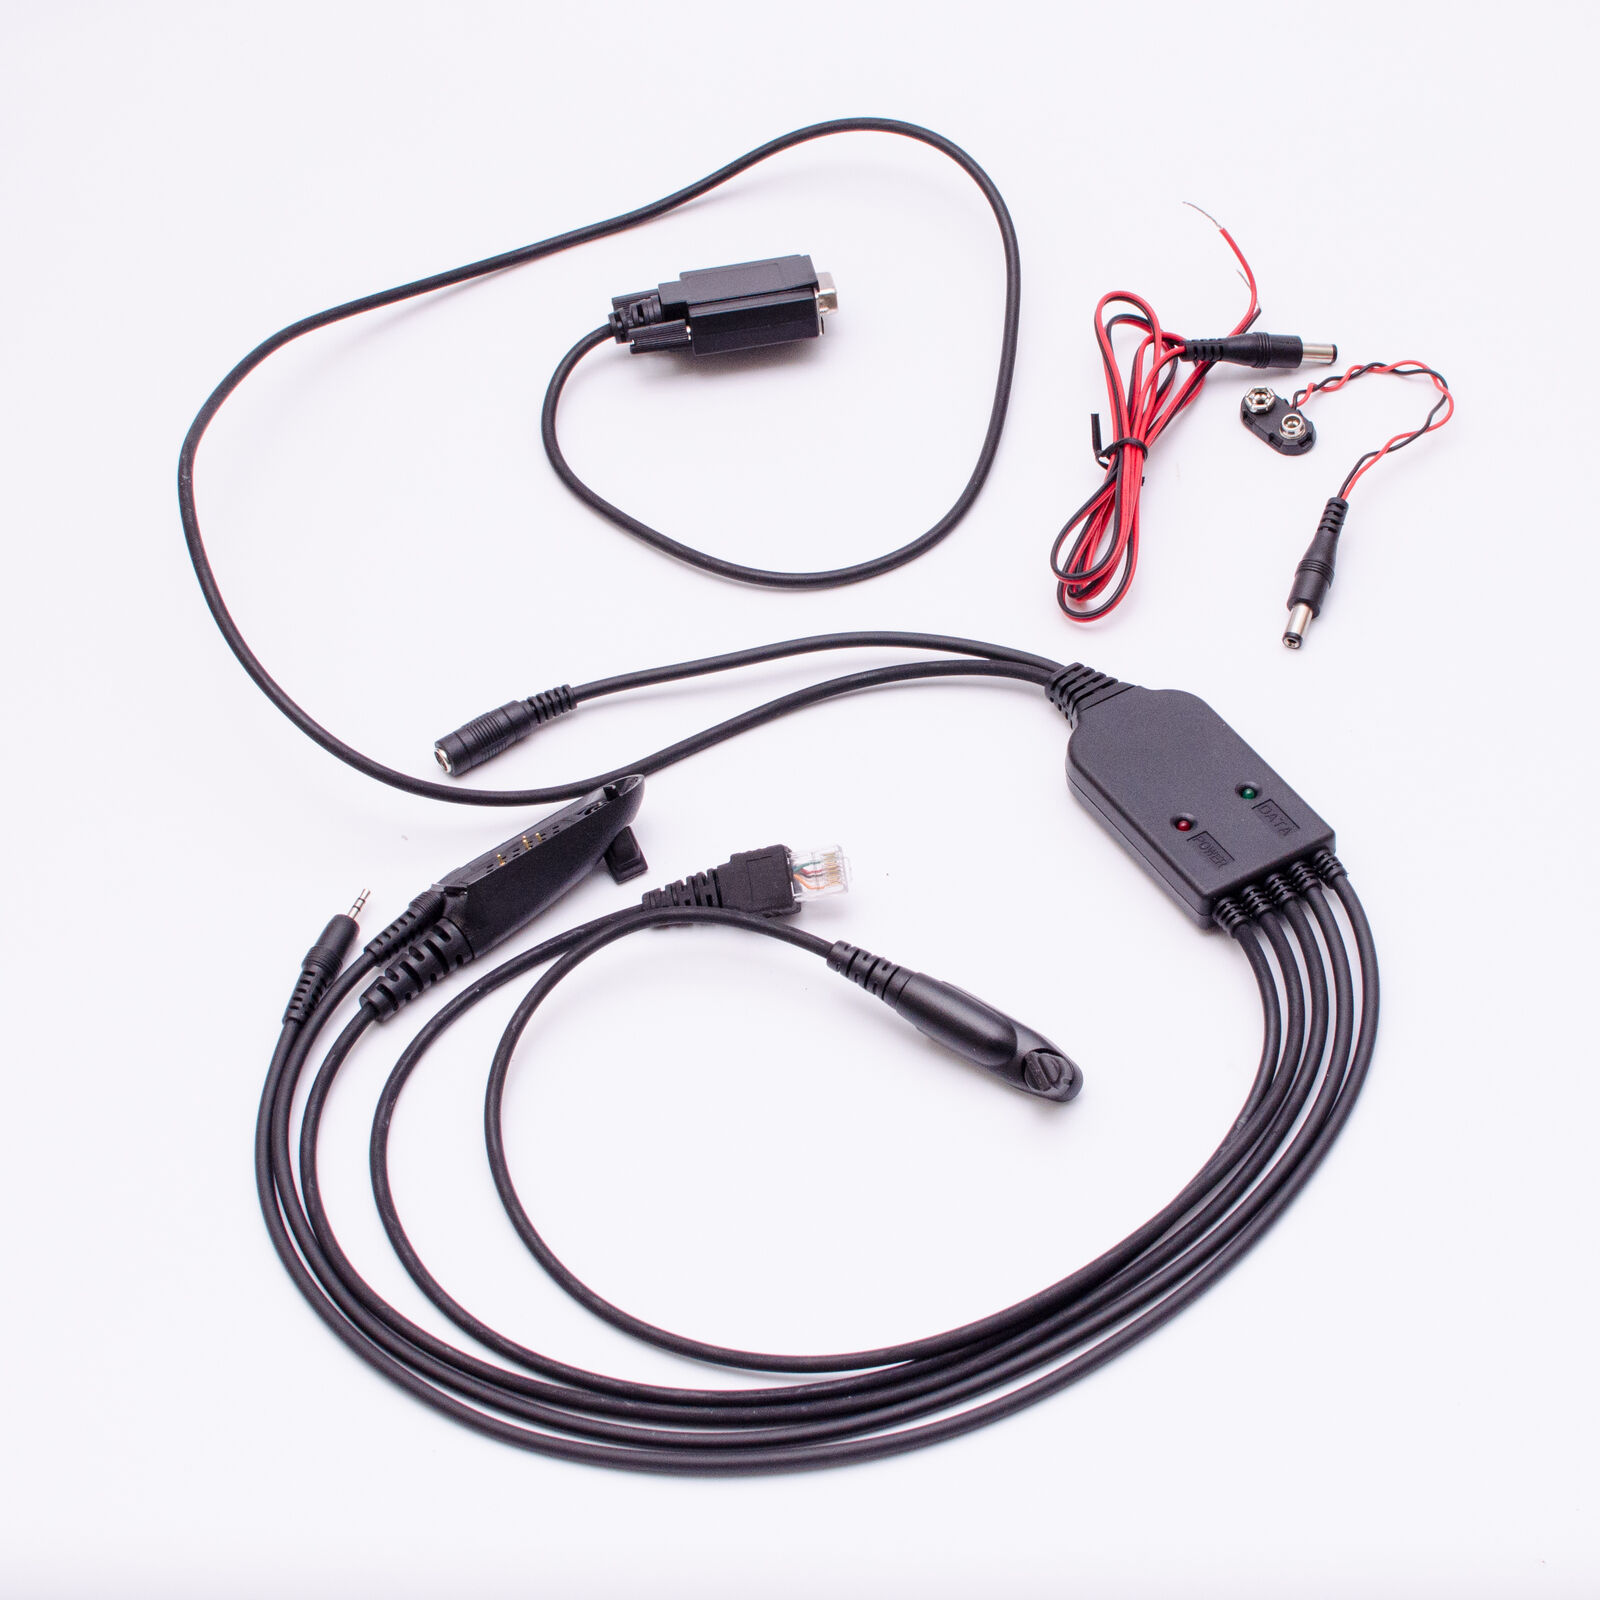 5 in 1 RS232 Programming Cable for Motorola GM300 SM50 SM120 M10 M100 LCS2000. Available Now for 35.00